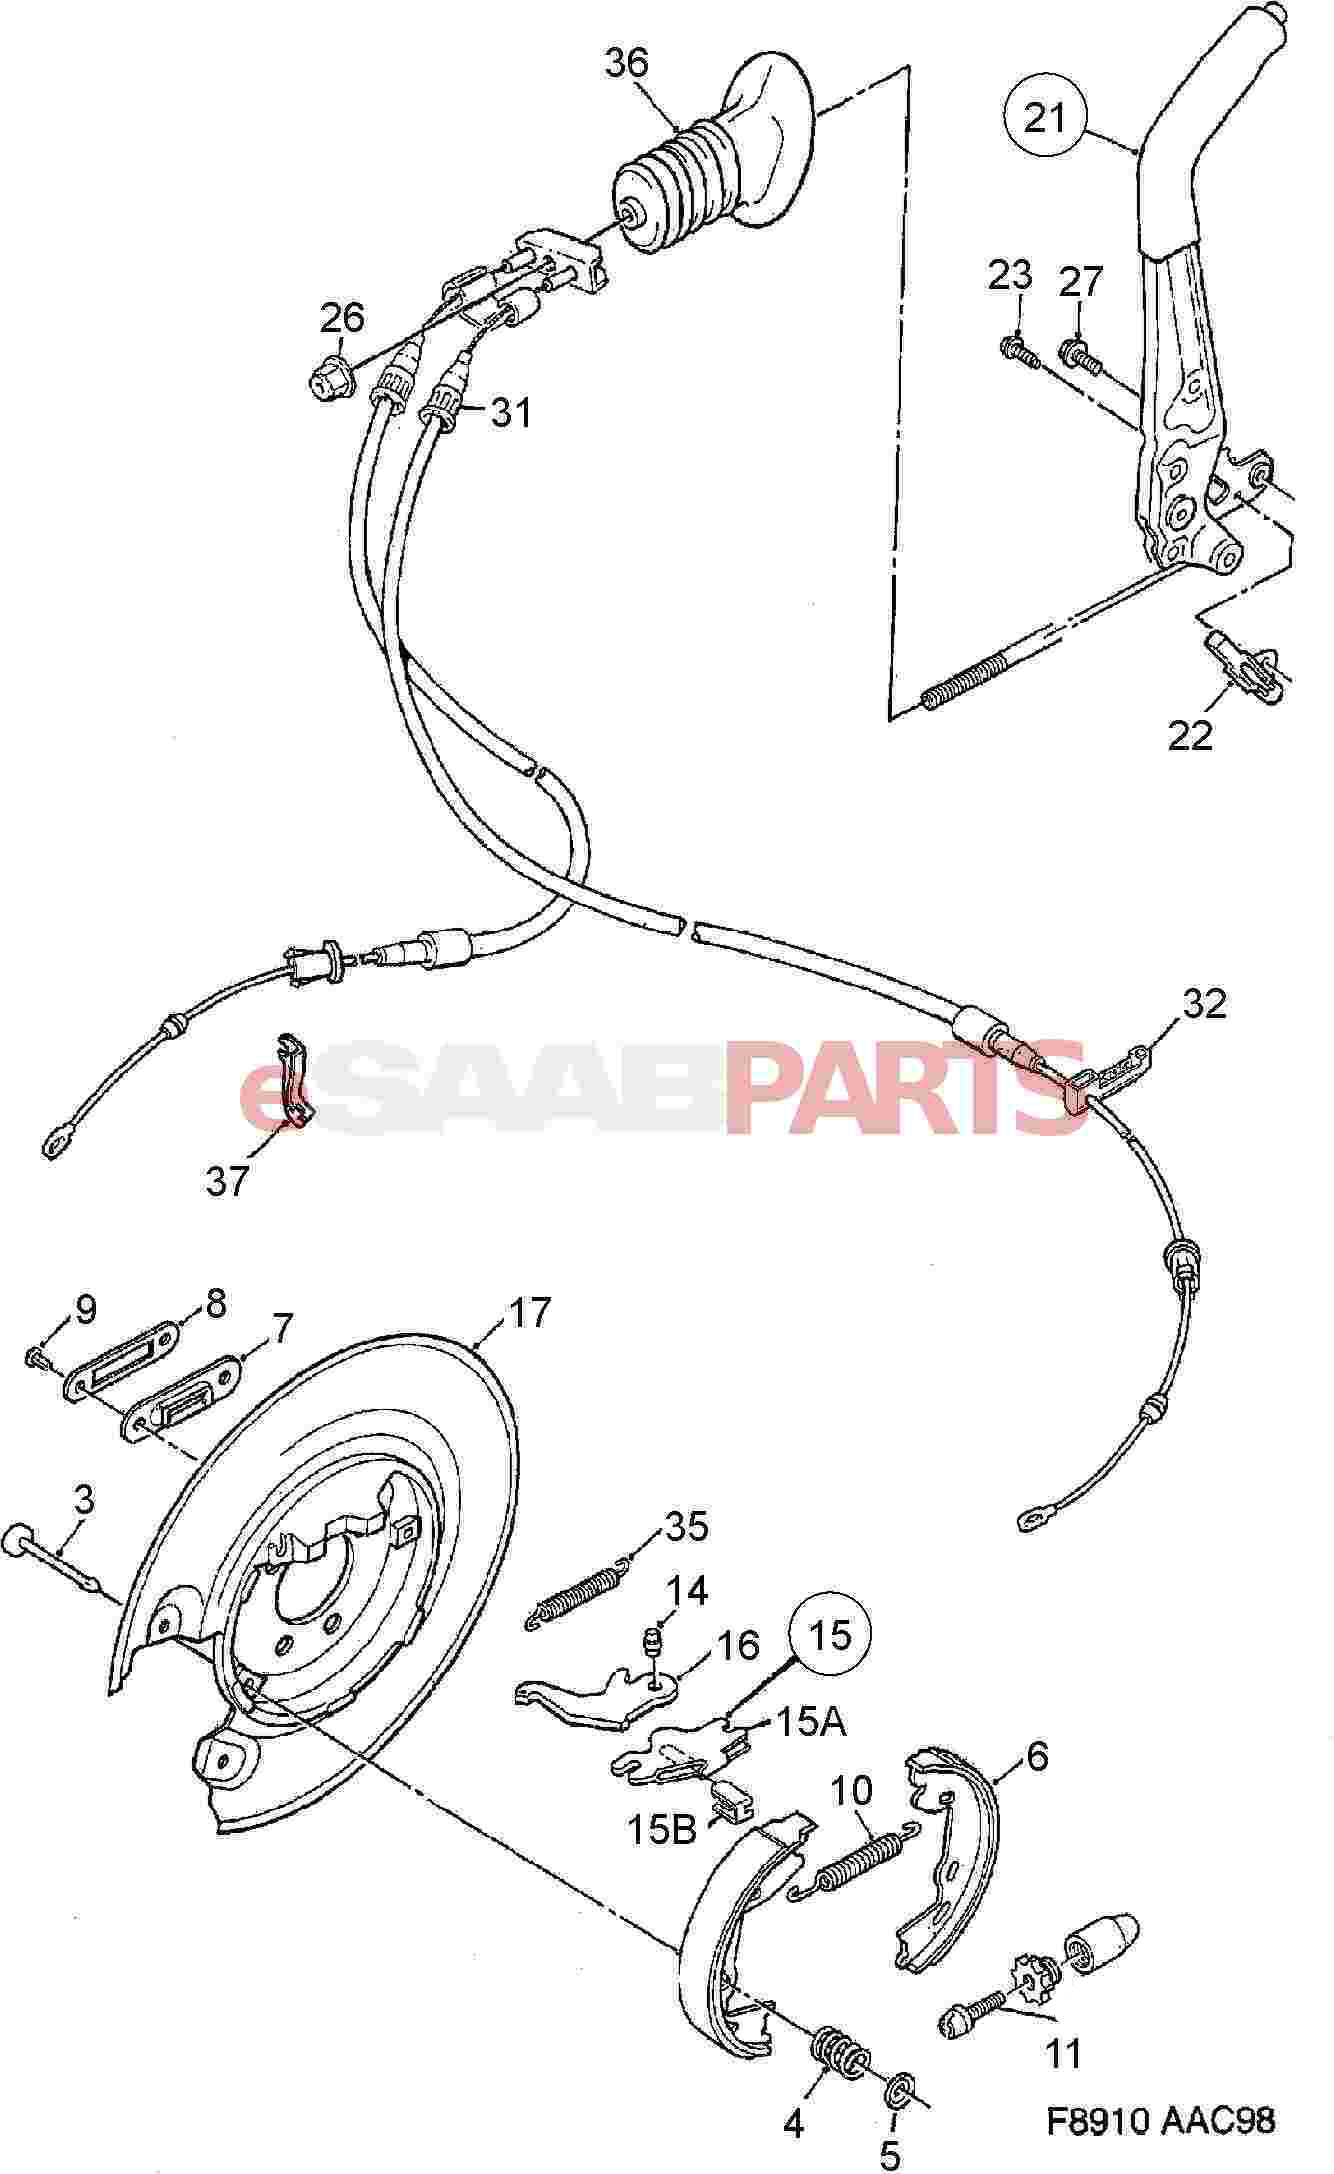 Nissan Pathfinder Diagram Showing Brake Line